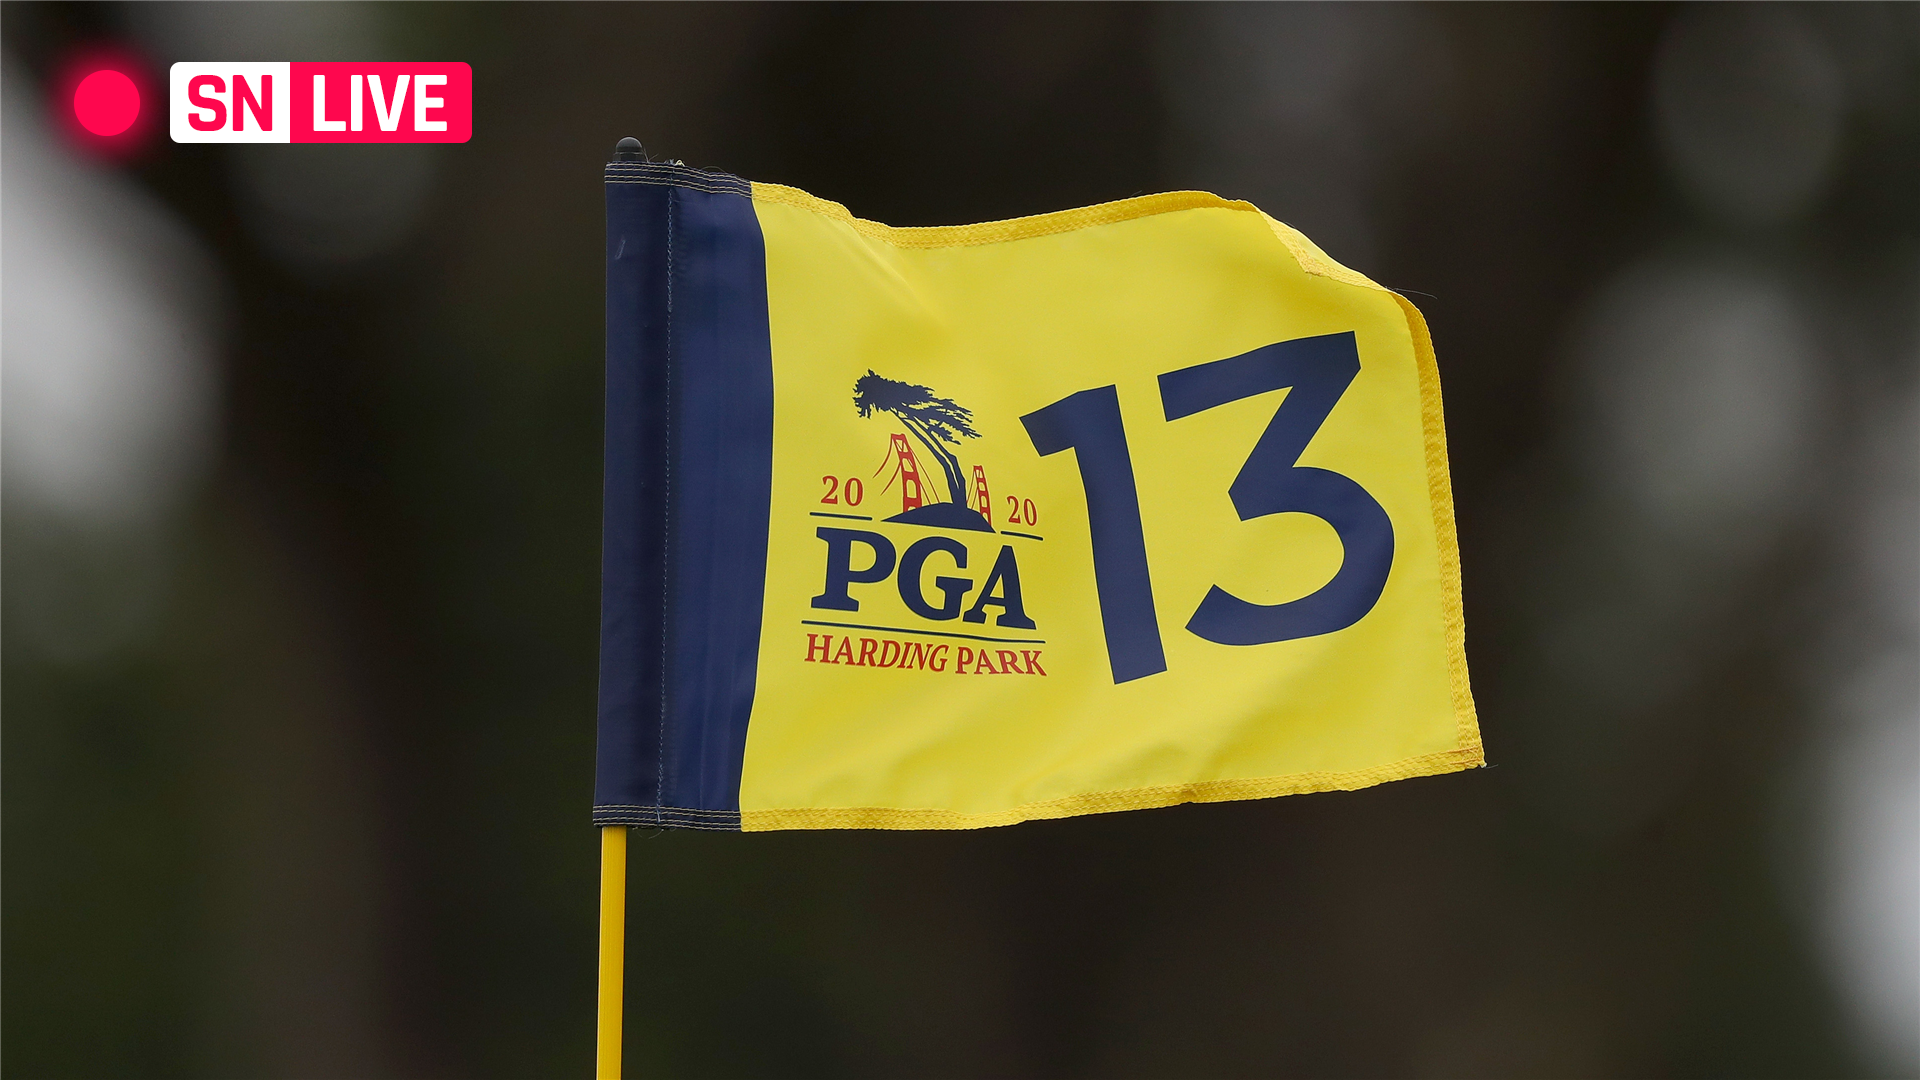 PGA Championship leaderboard 2020: Live golf scores, results from Thursday's Round 1